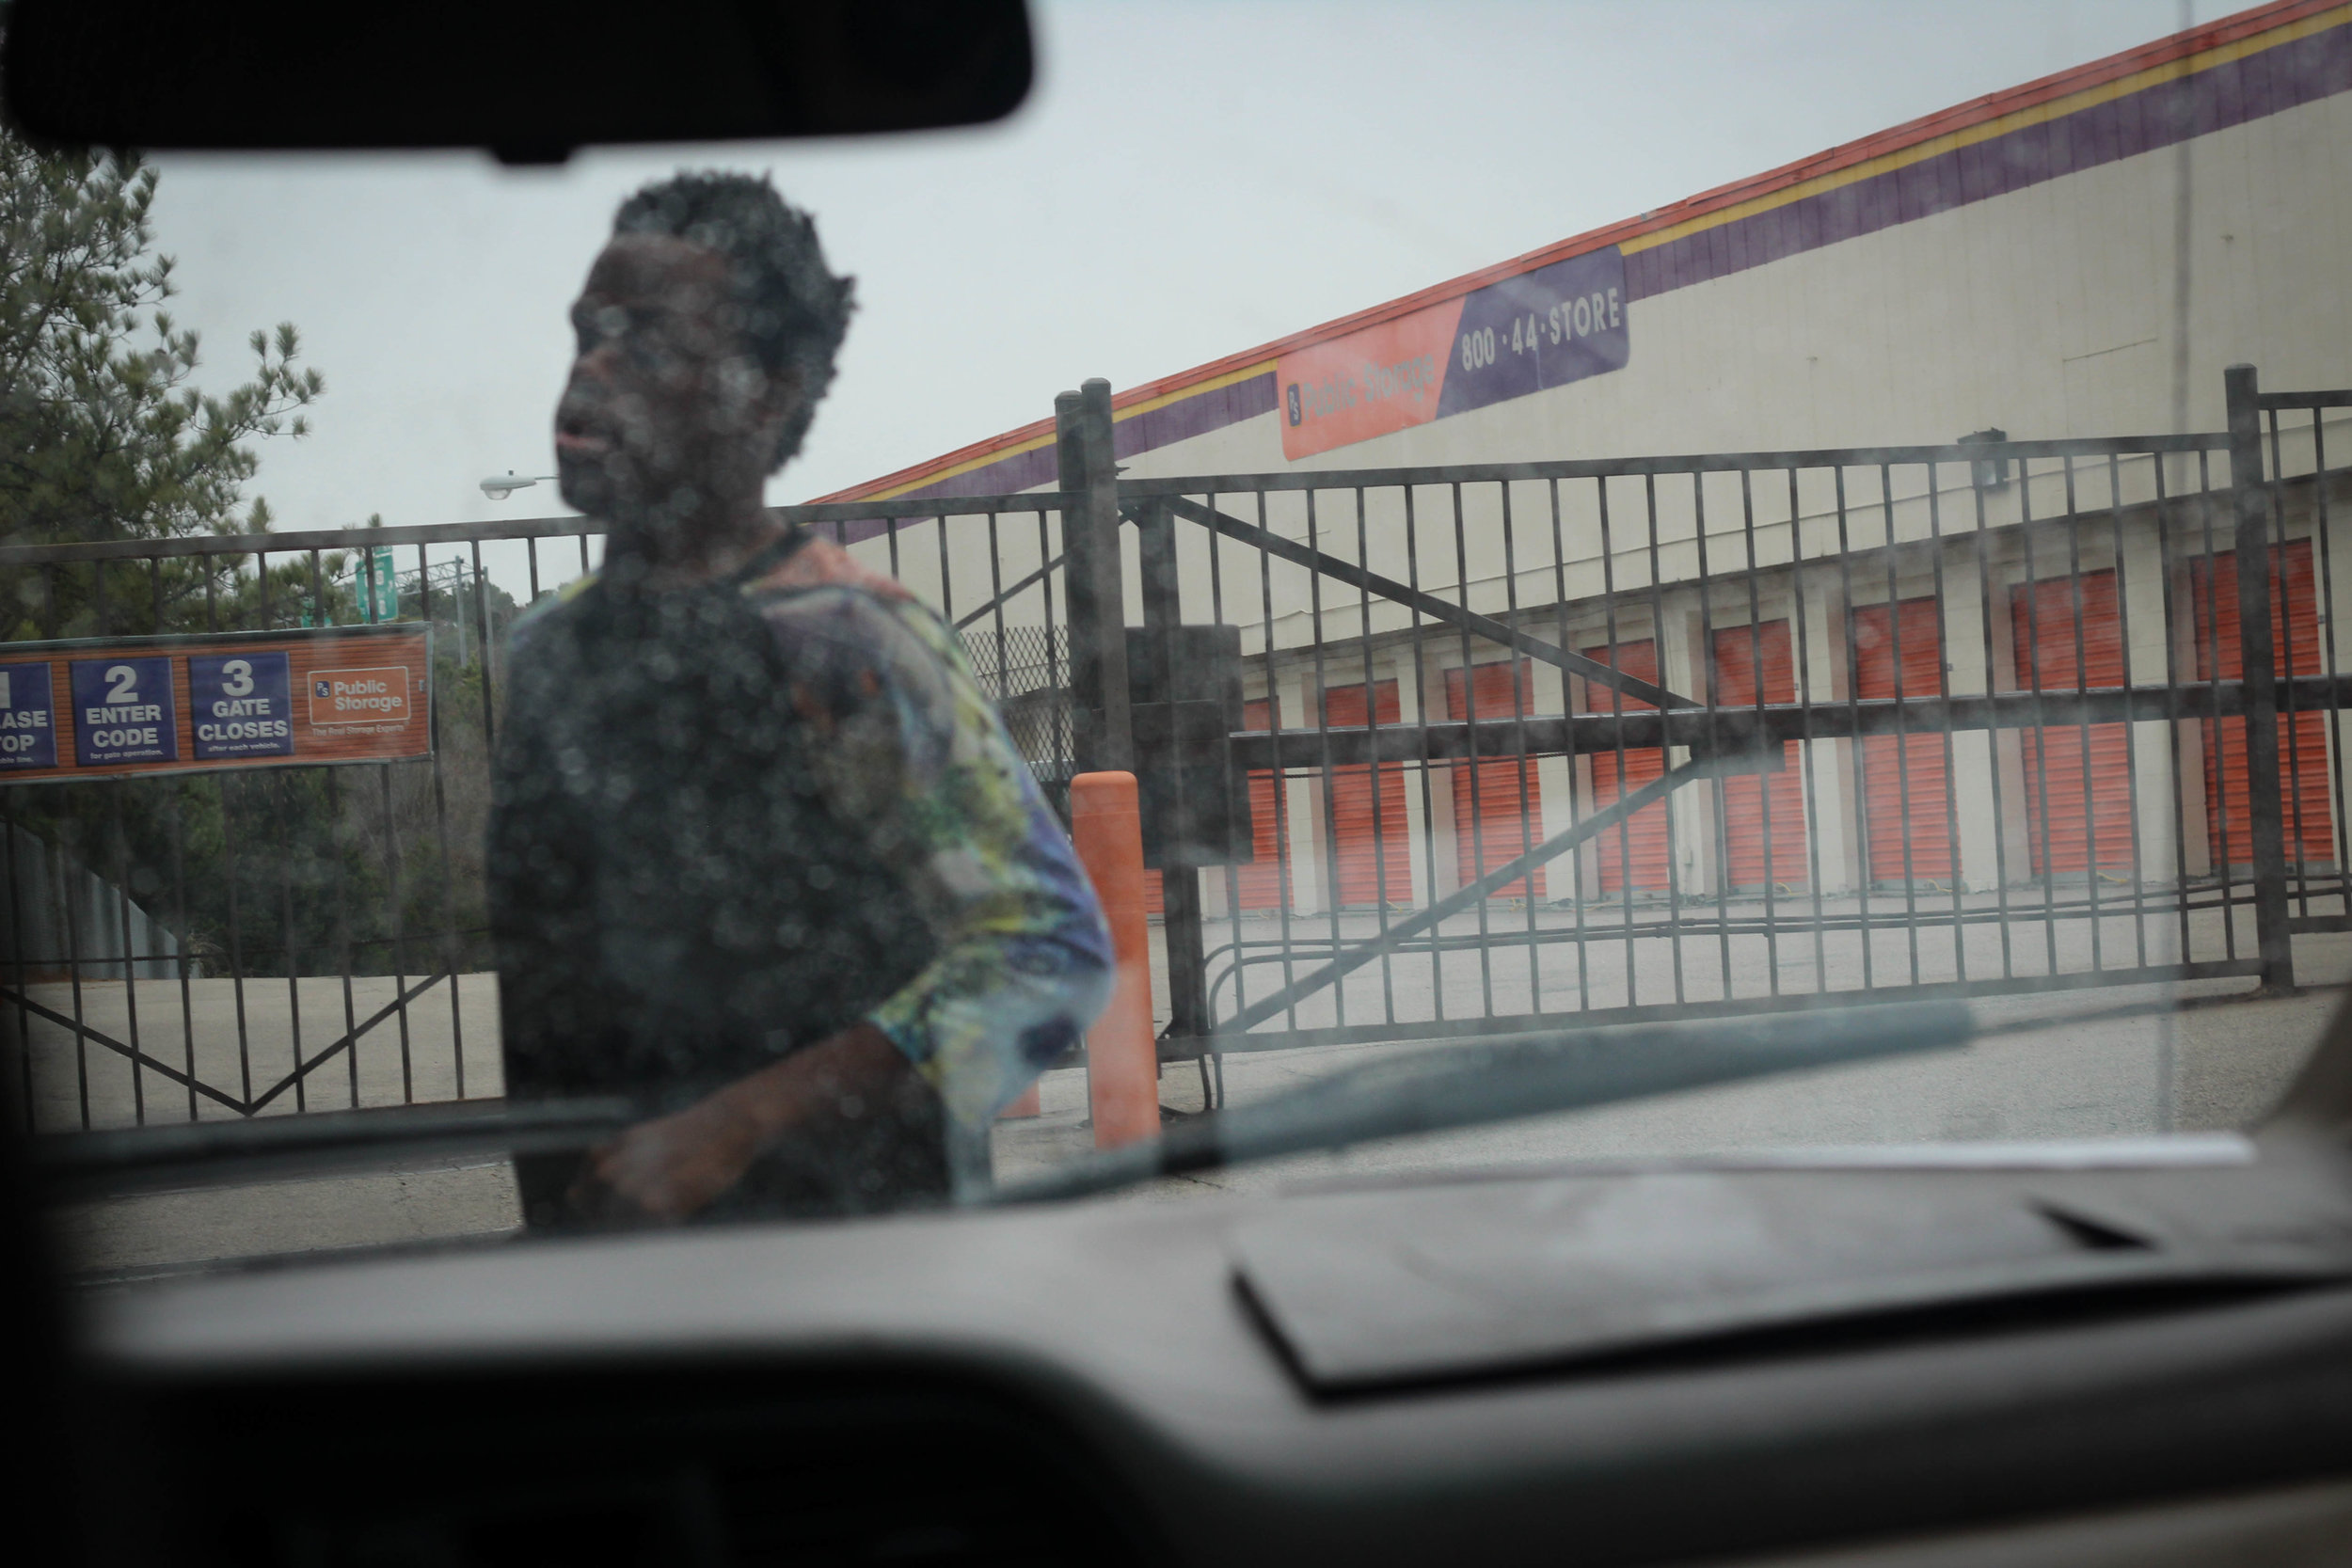 """Equashia's son, Abdurrahman, opens the gate to enter the storage facility where Equashia is storing the items that won't fit in her van and hotel rooms. """"Ever since he got shot, he's got this chip on his shoulder,"""" says Equashia. Shortly after the shooting, Abdurrahman purchased a gun and began carrying it around with him at all times for protection. Out of anger, he talks about shooting the people who did this to him. """"I lost a son to gang violence in 2011,"""" says Equashia. """"These boys don't know what it's like to have to get that call, to have to identify your child. They talk about shooting so casually."""""""